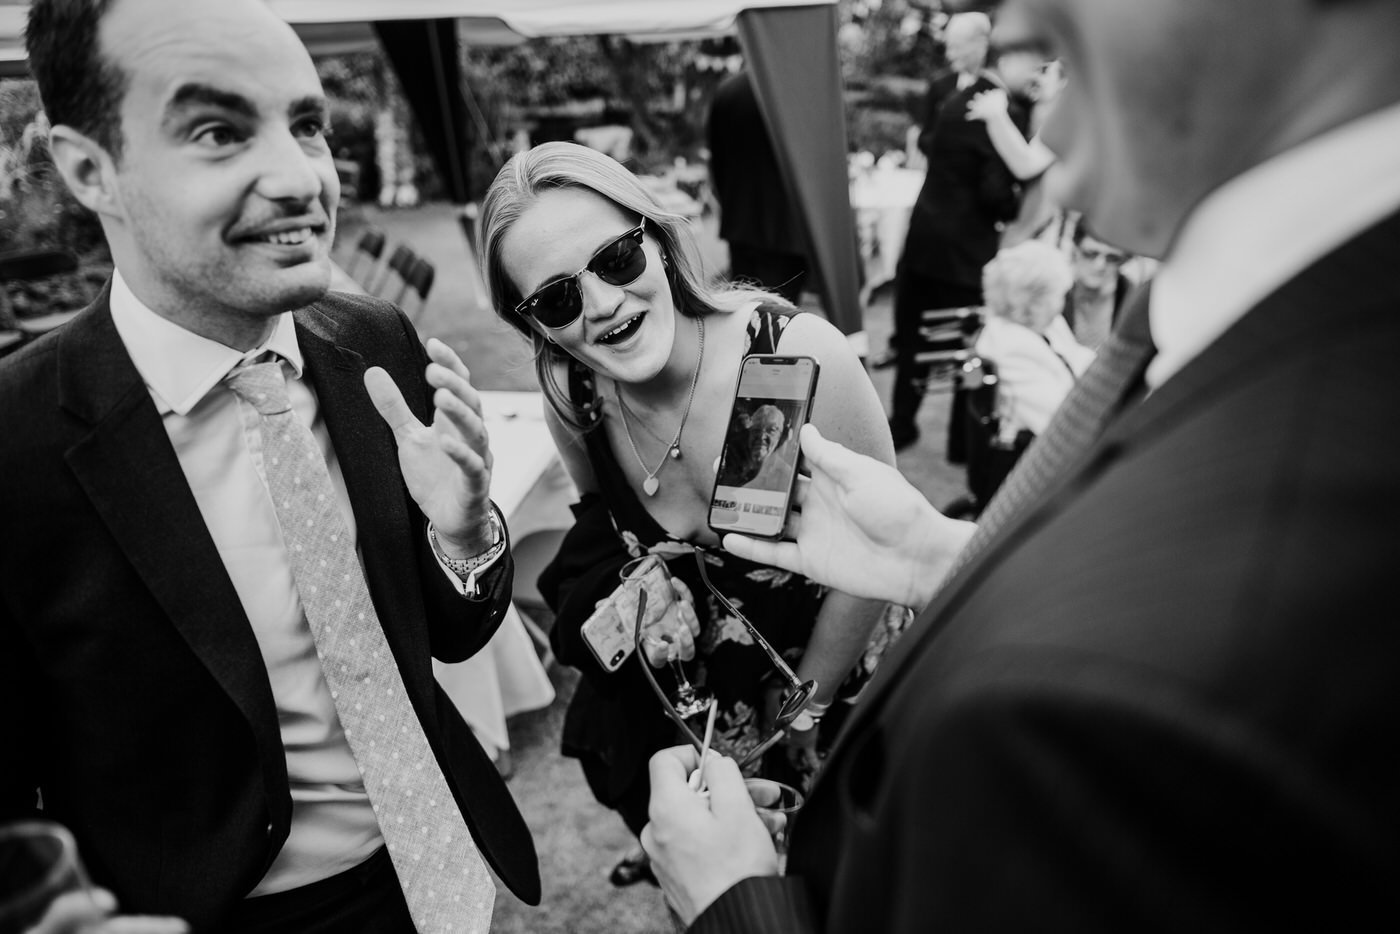 Wedding guests reacting to an image on a phone